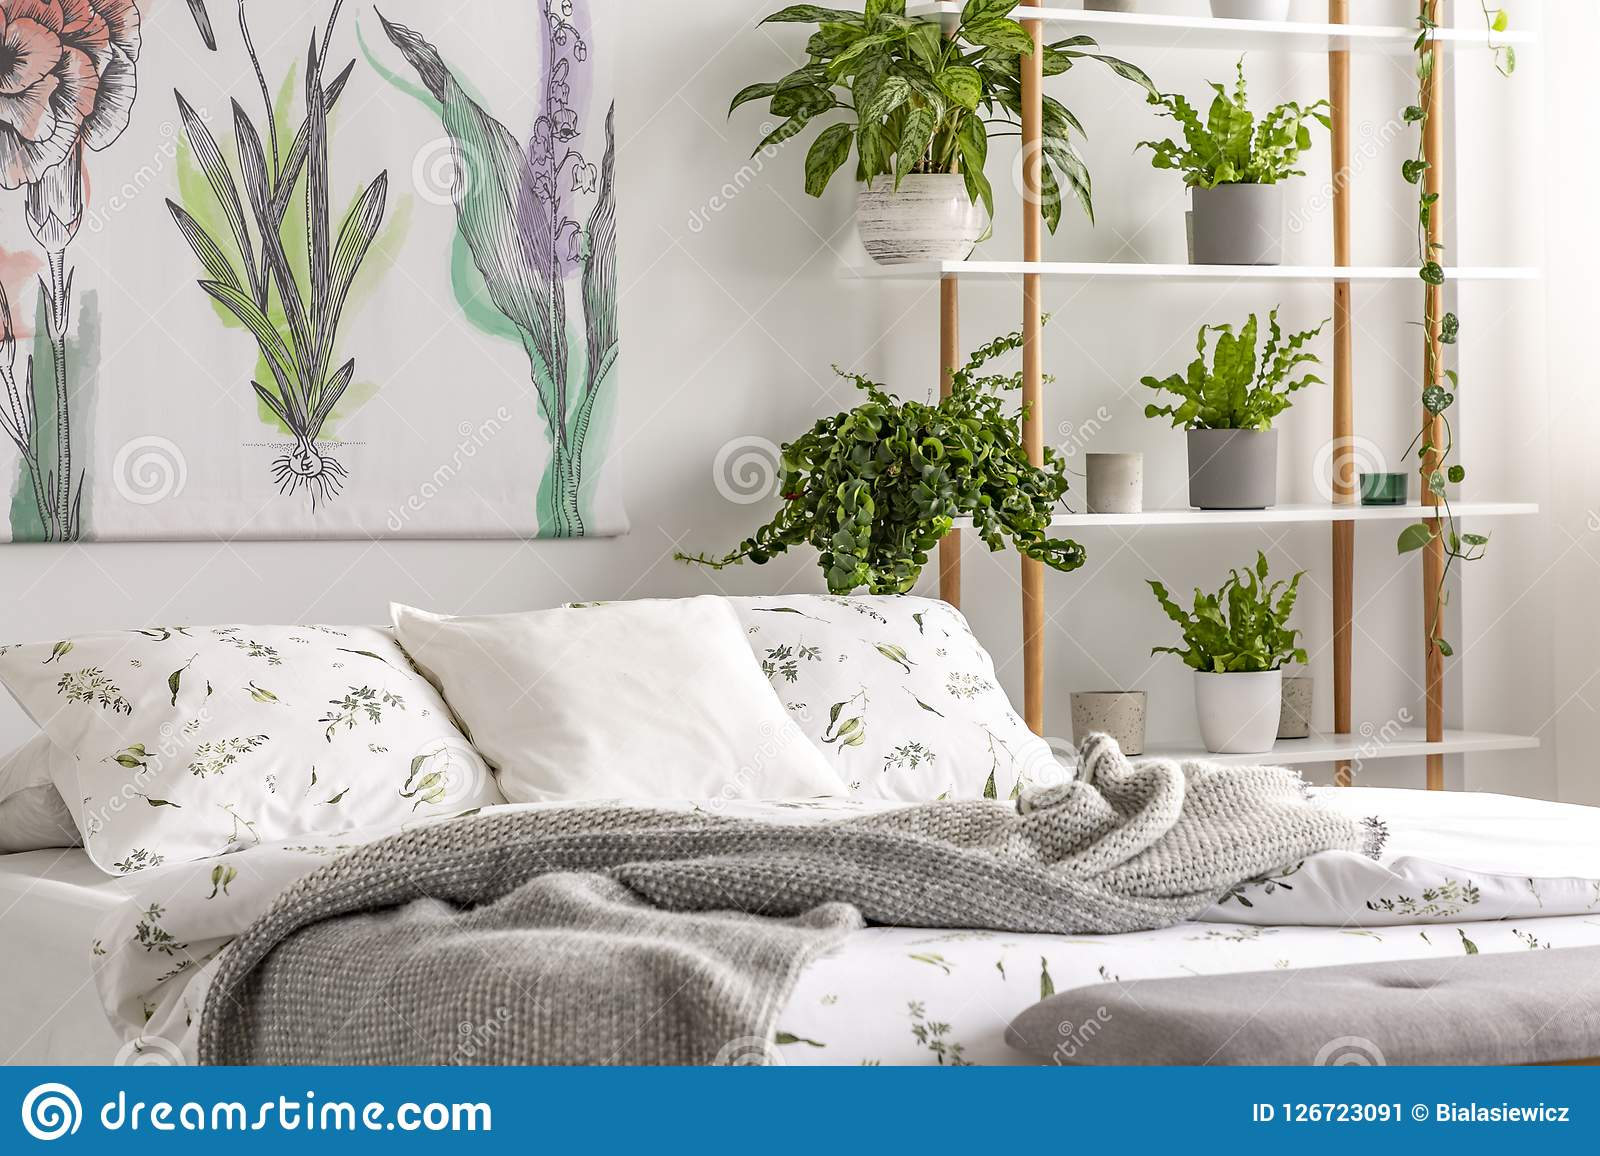 Urban jungle bedroom interior with plants in pots beside a bed dressed in organic cotton linen of white color with green print. Re